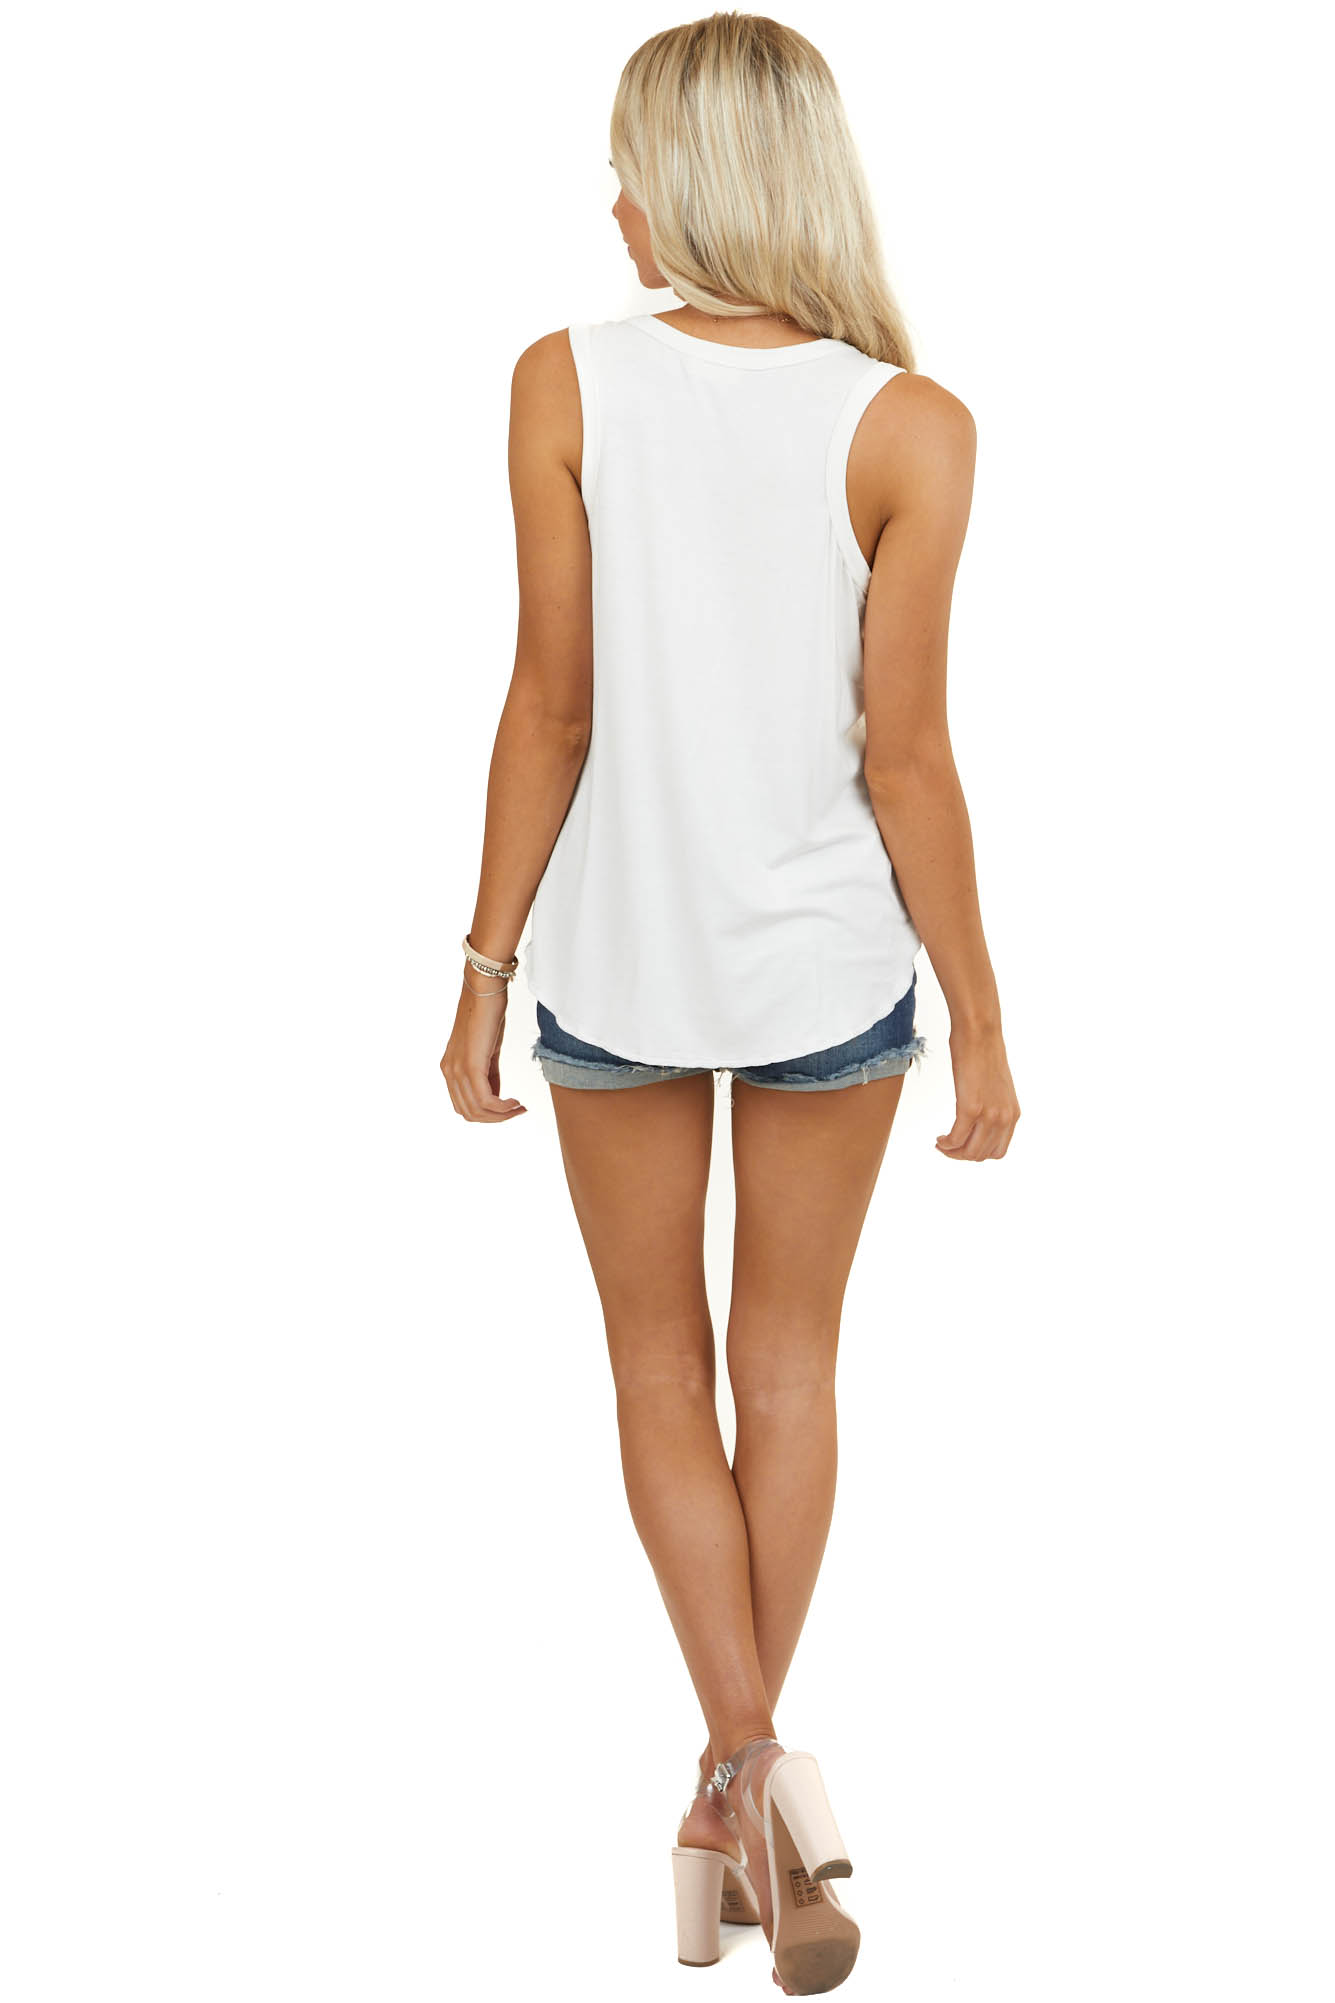 Ivory Sleeveless Knit Top with Rounded Neckline